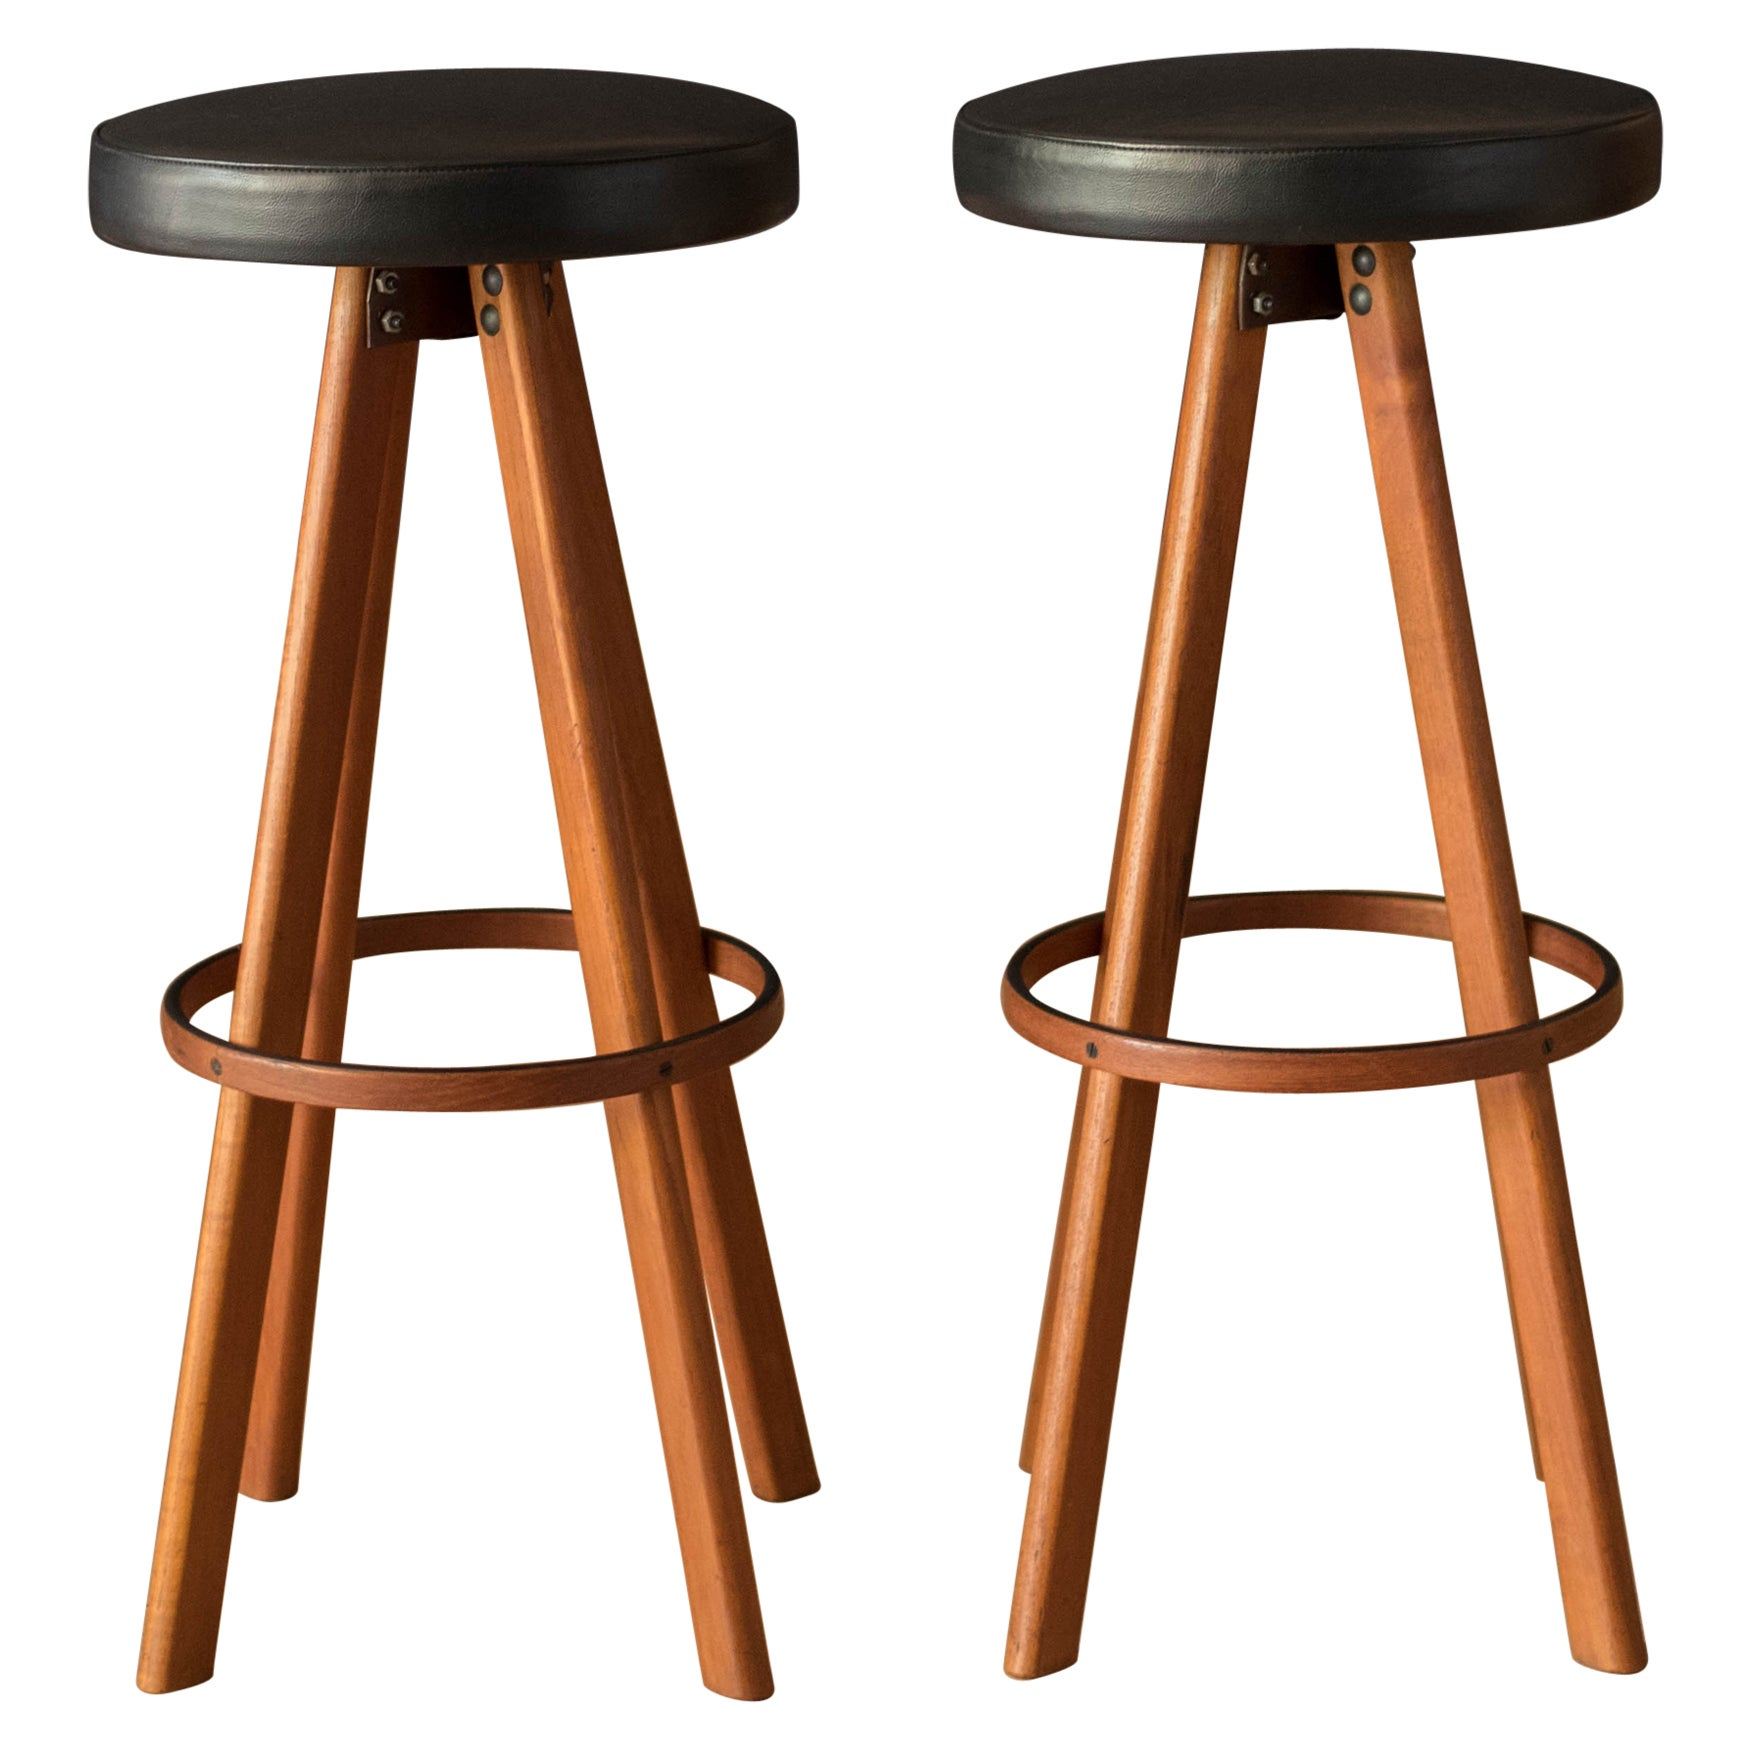 Vintage Pair of Danish Teak Bar & Counter Stools by Hans Olsen for Frem Rojle